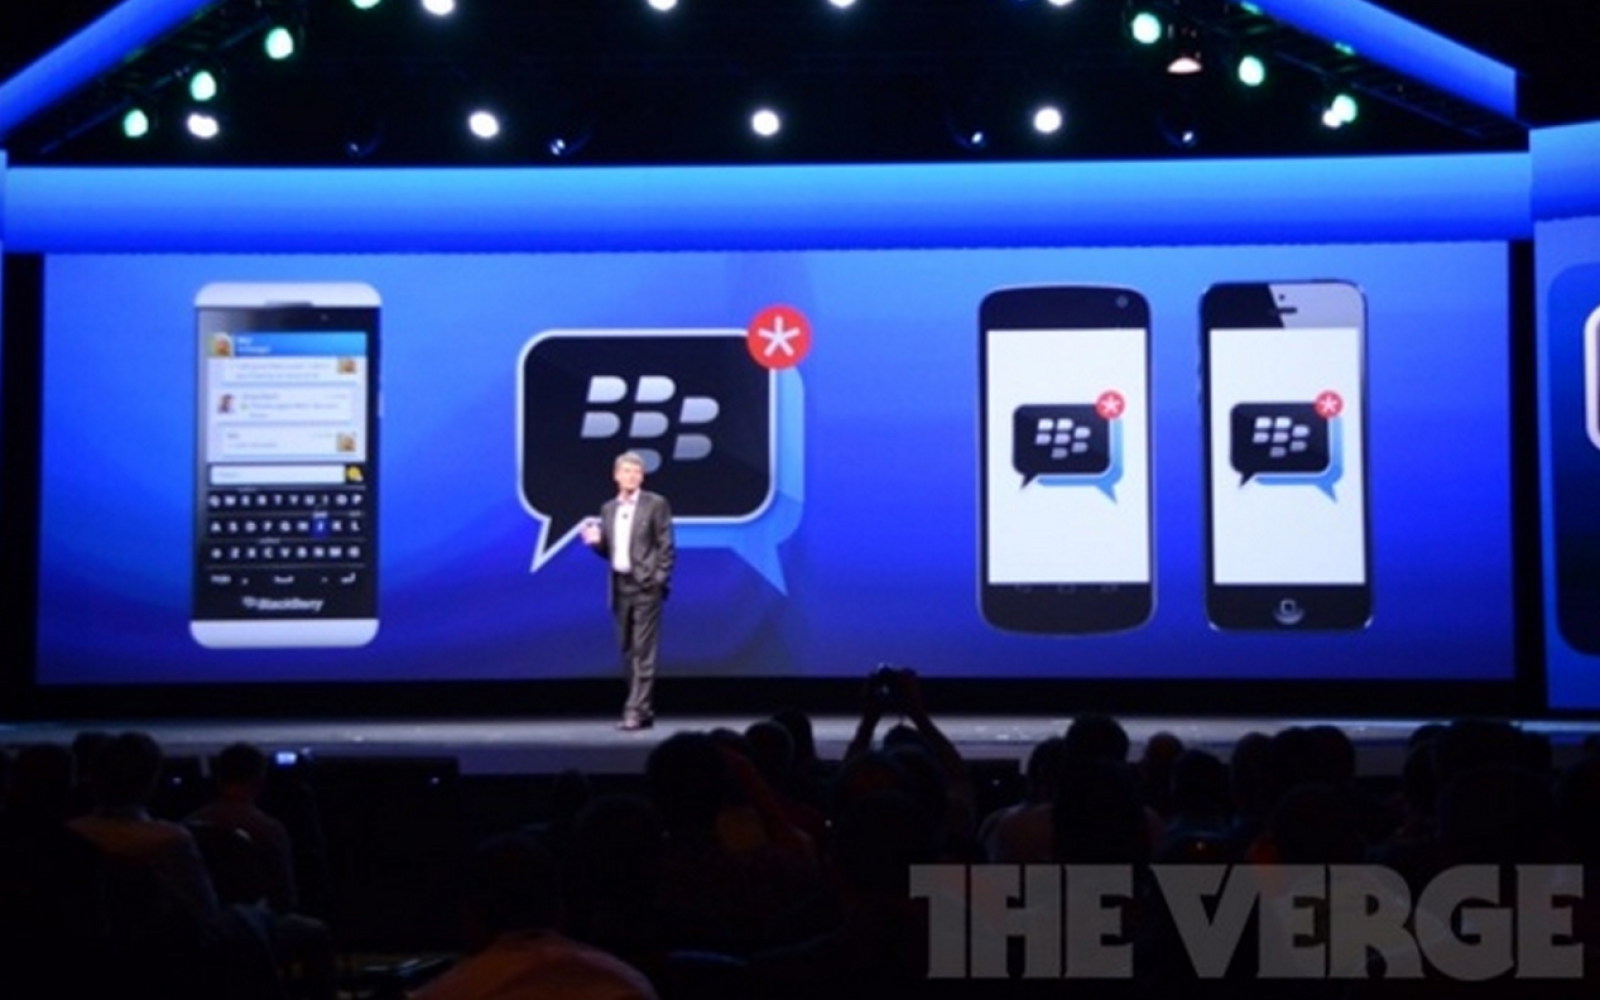 BlackBerry announces BBM coming to iOS and Android later this summer